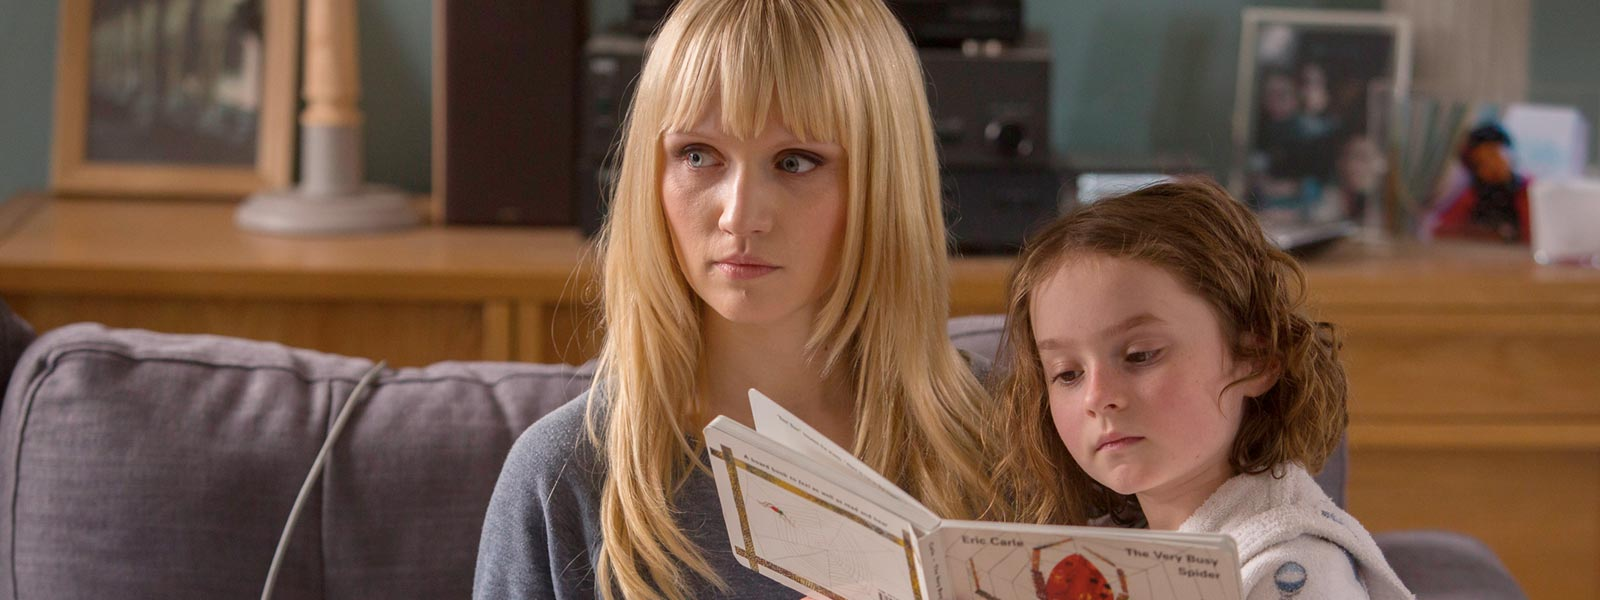 humans-episode-107-niska-berrington-sophie-davies-800×600